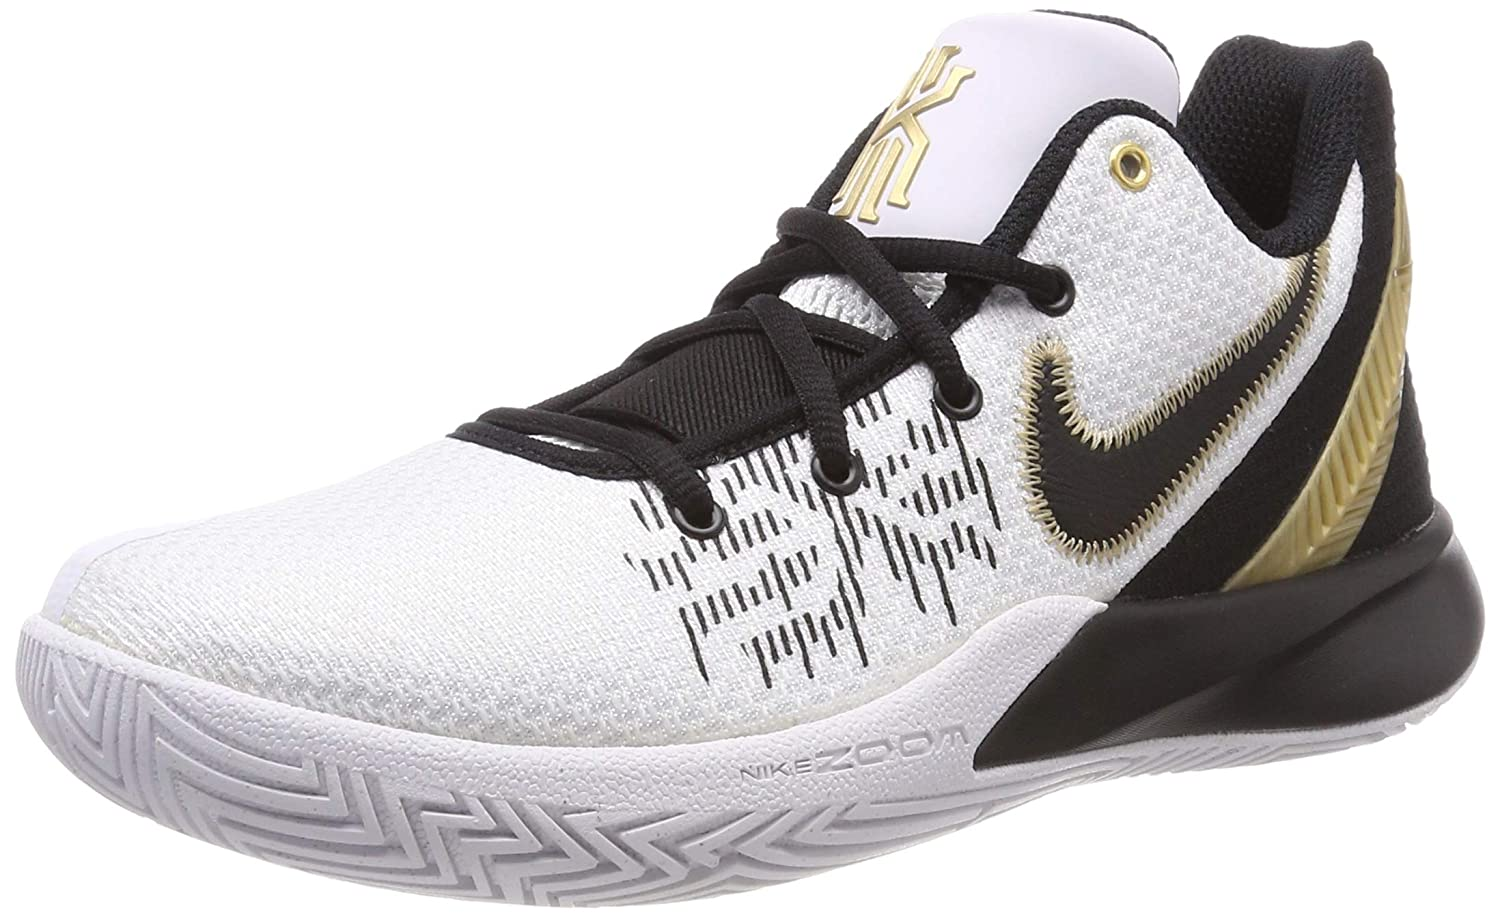 half off c6adf 54c18 Nike Men's Kyrie Flytrap II Basketball Shoes, White/Metallic Gold-Black